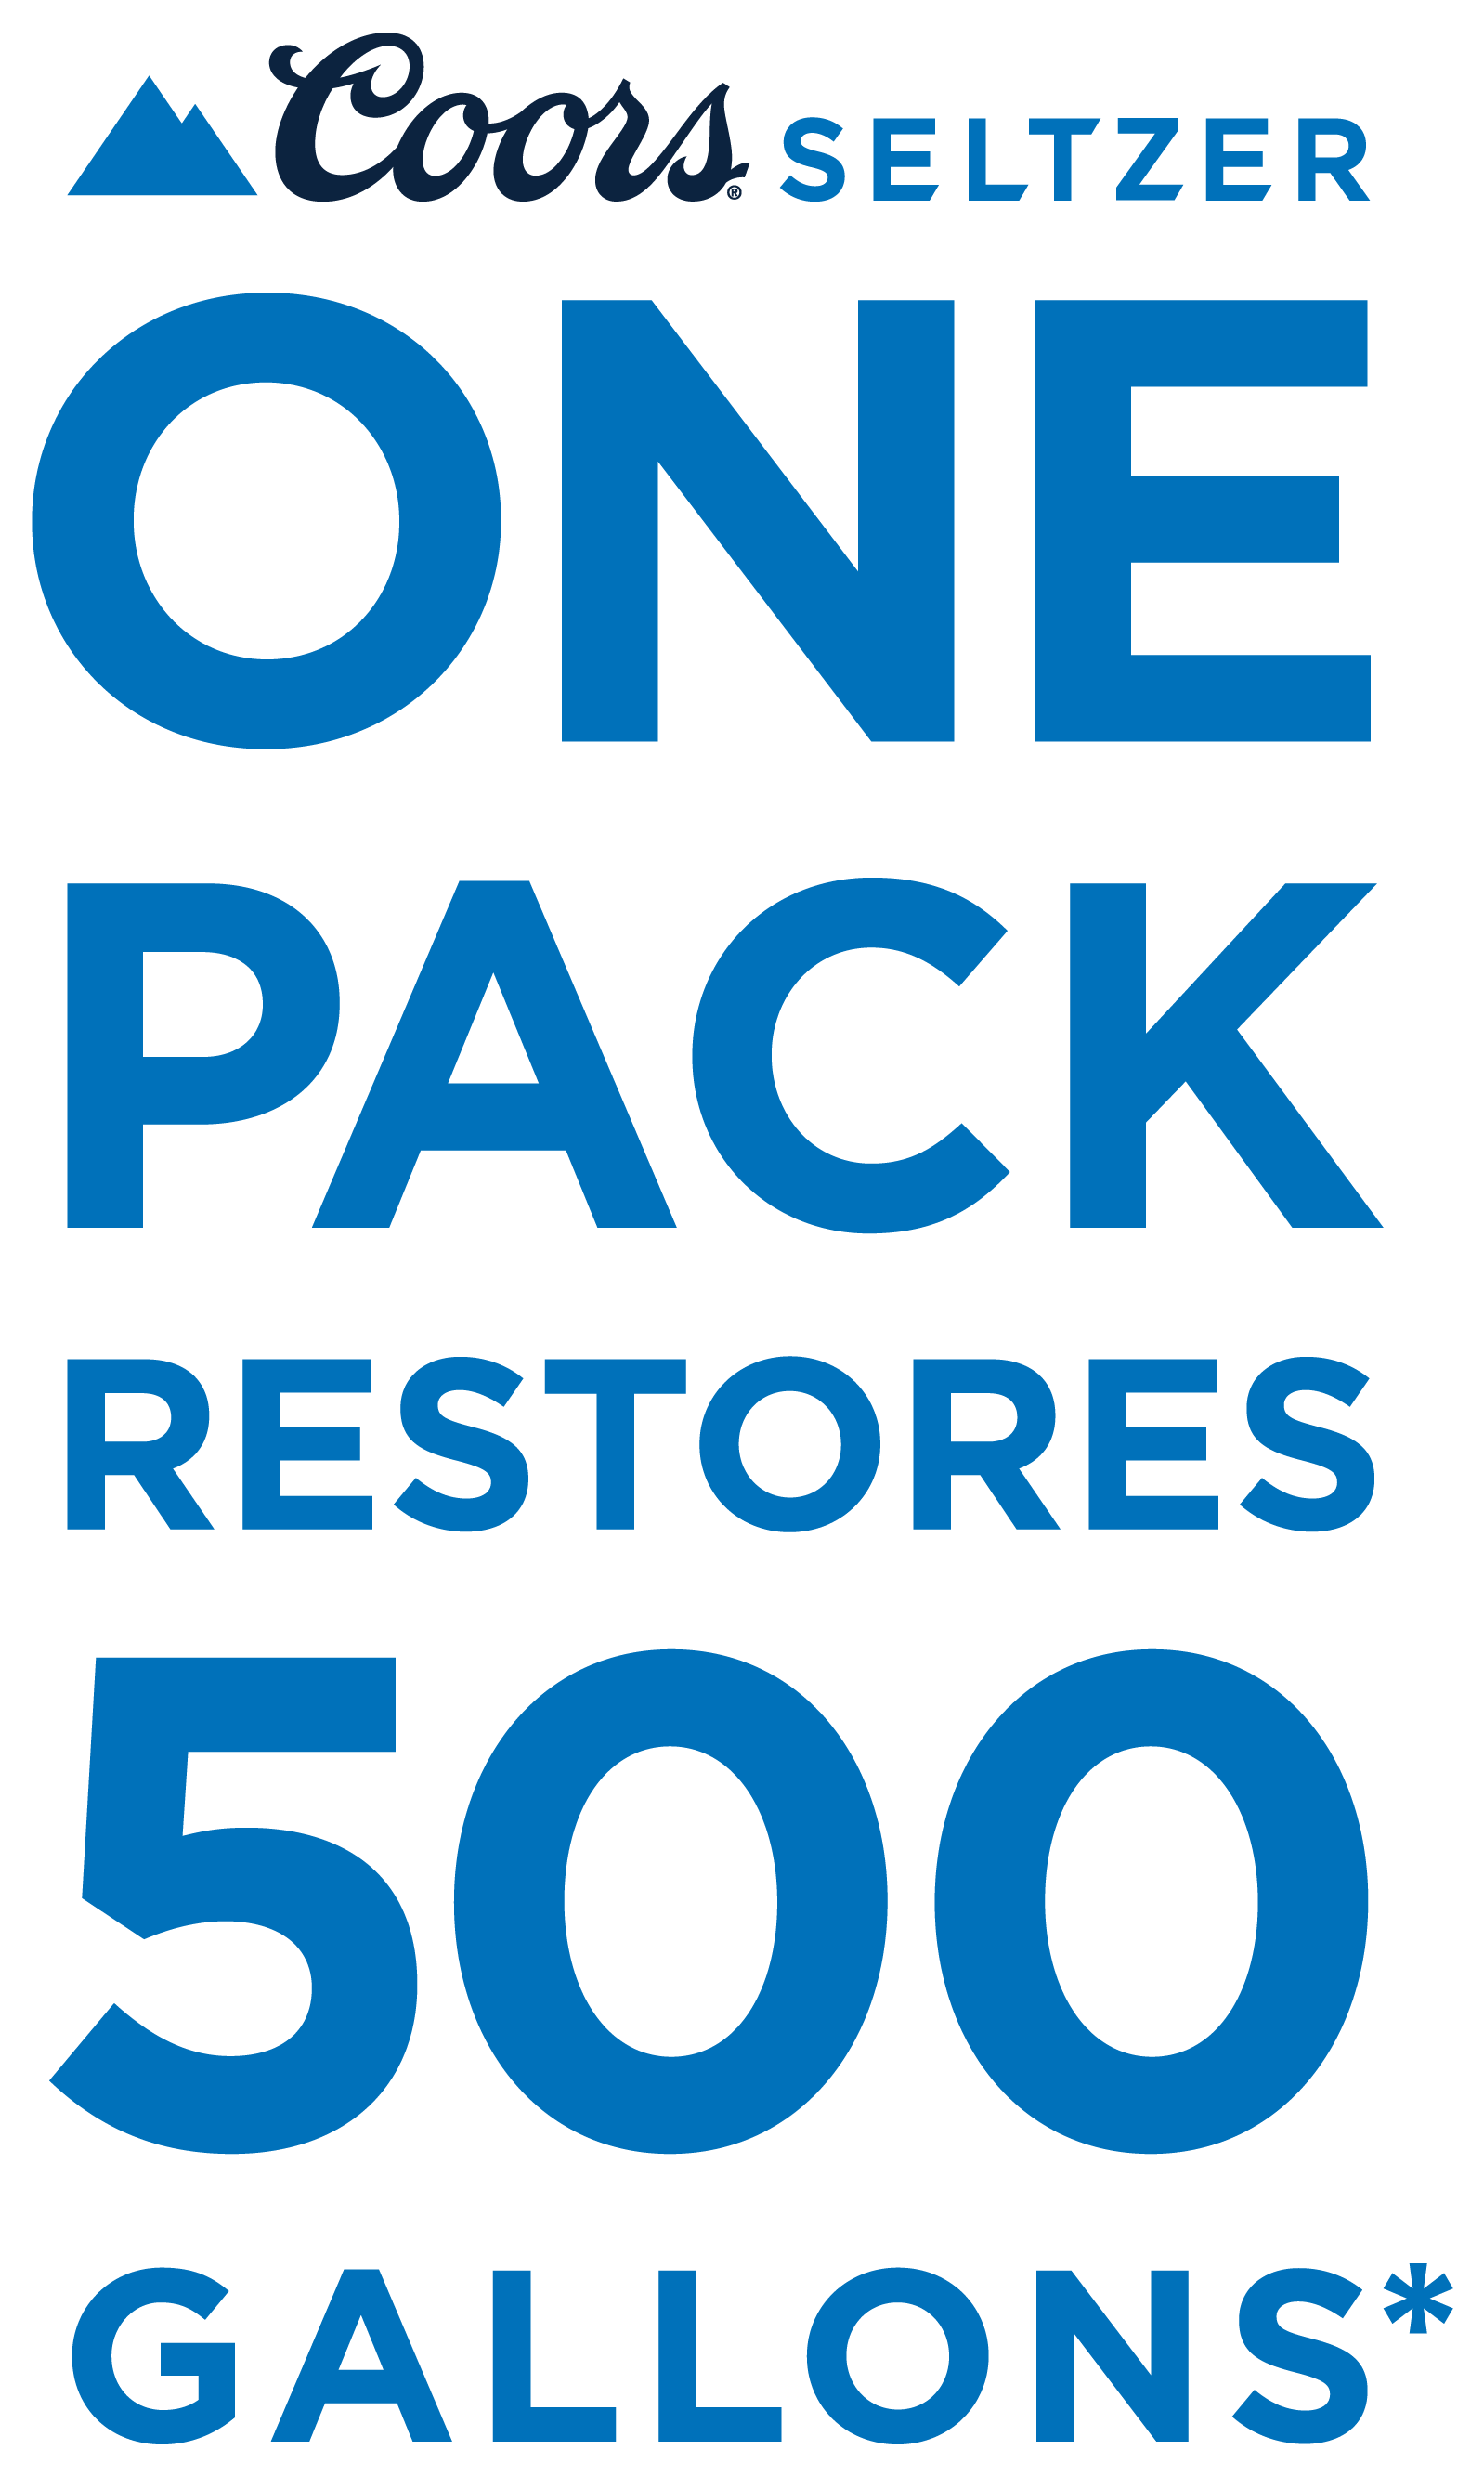 One pack restores 500 gallons